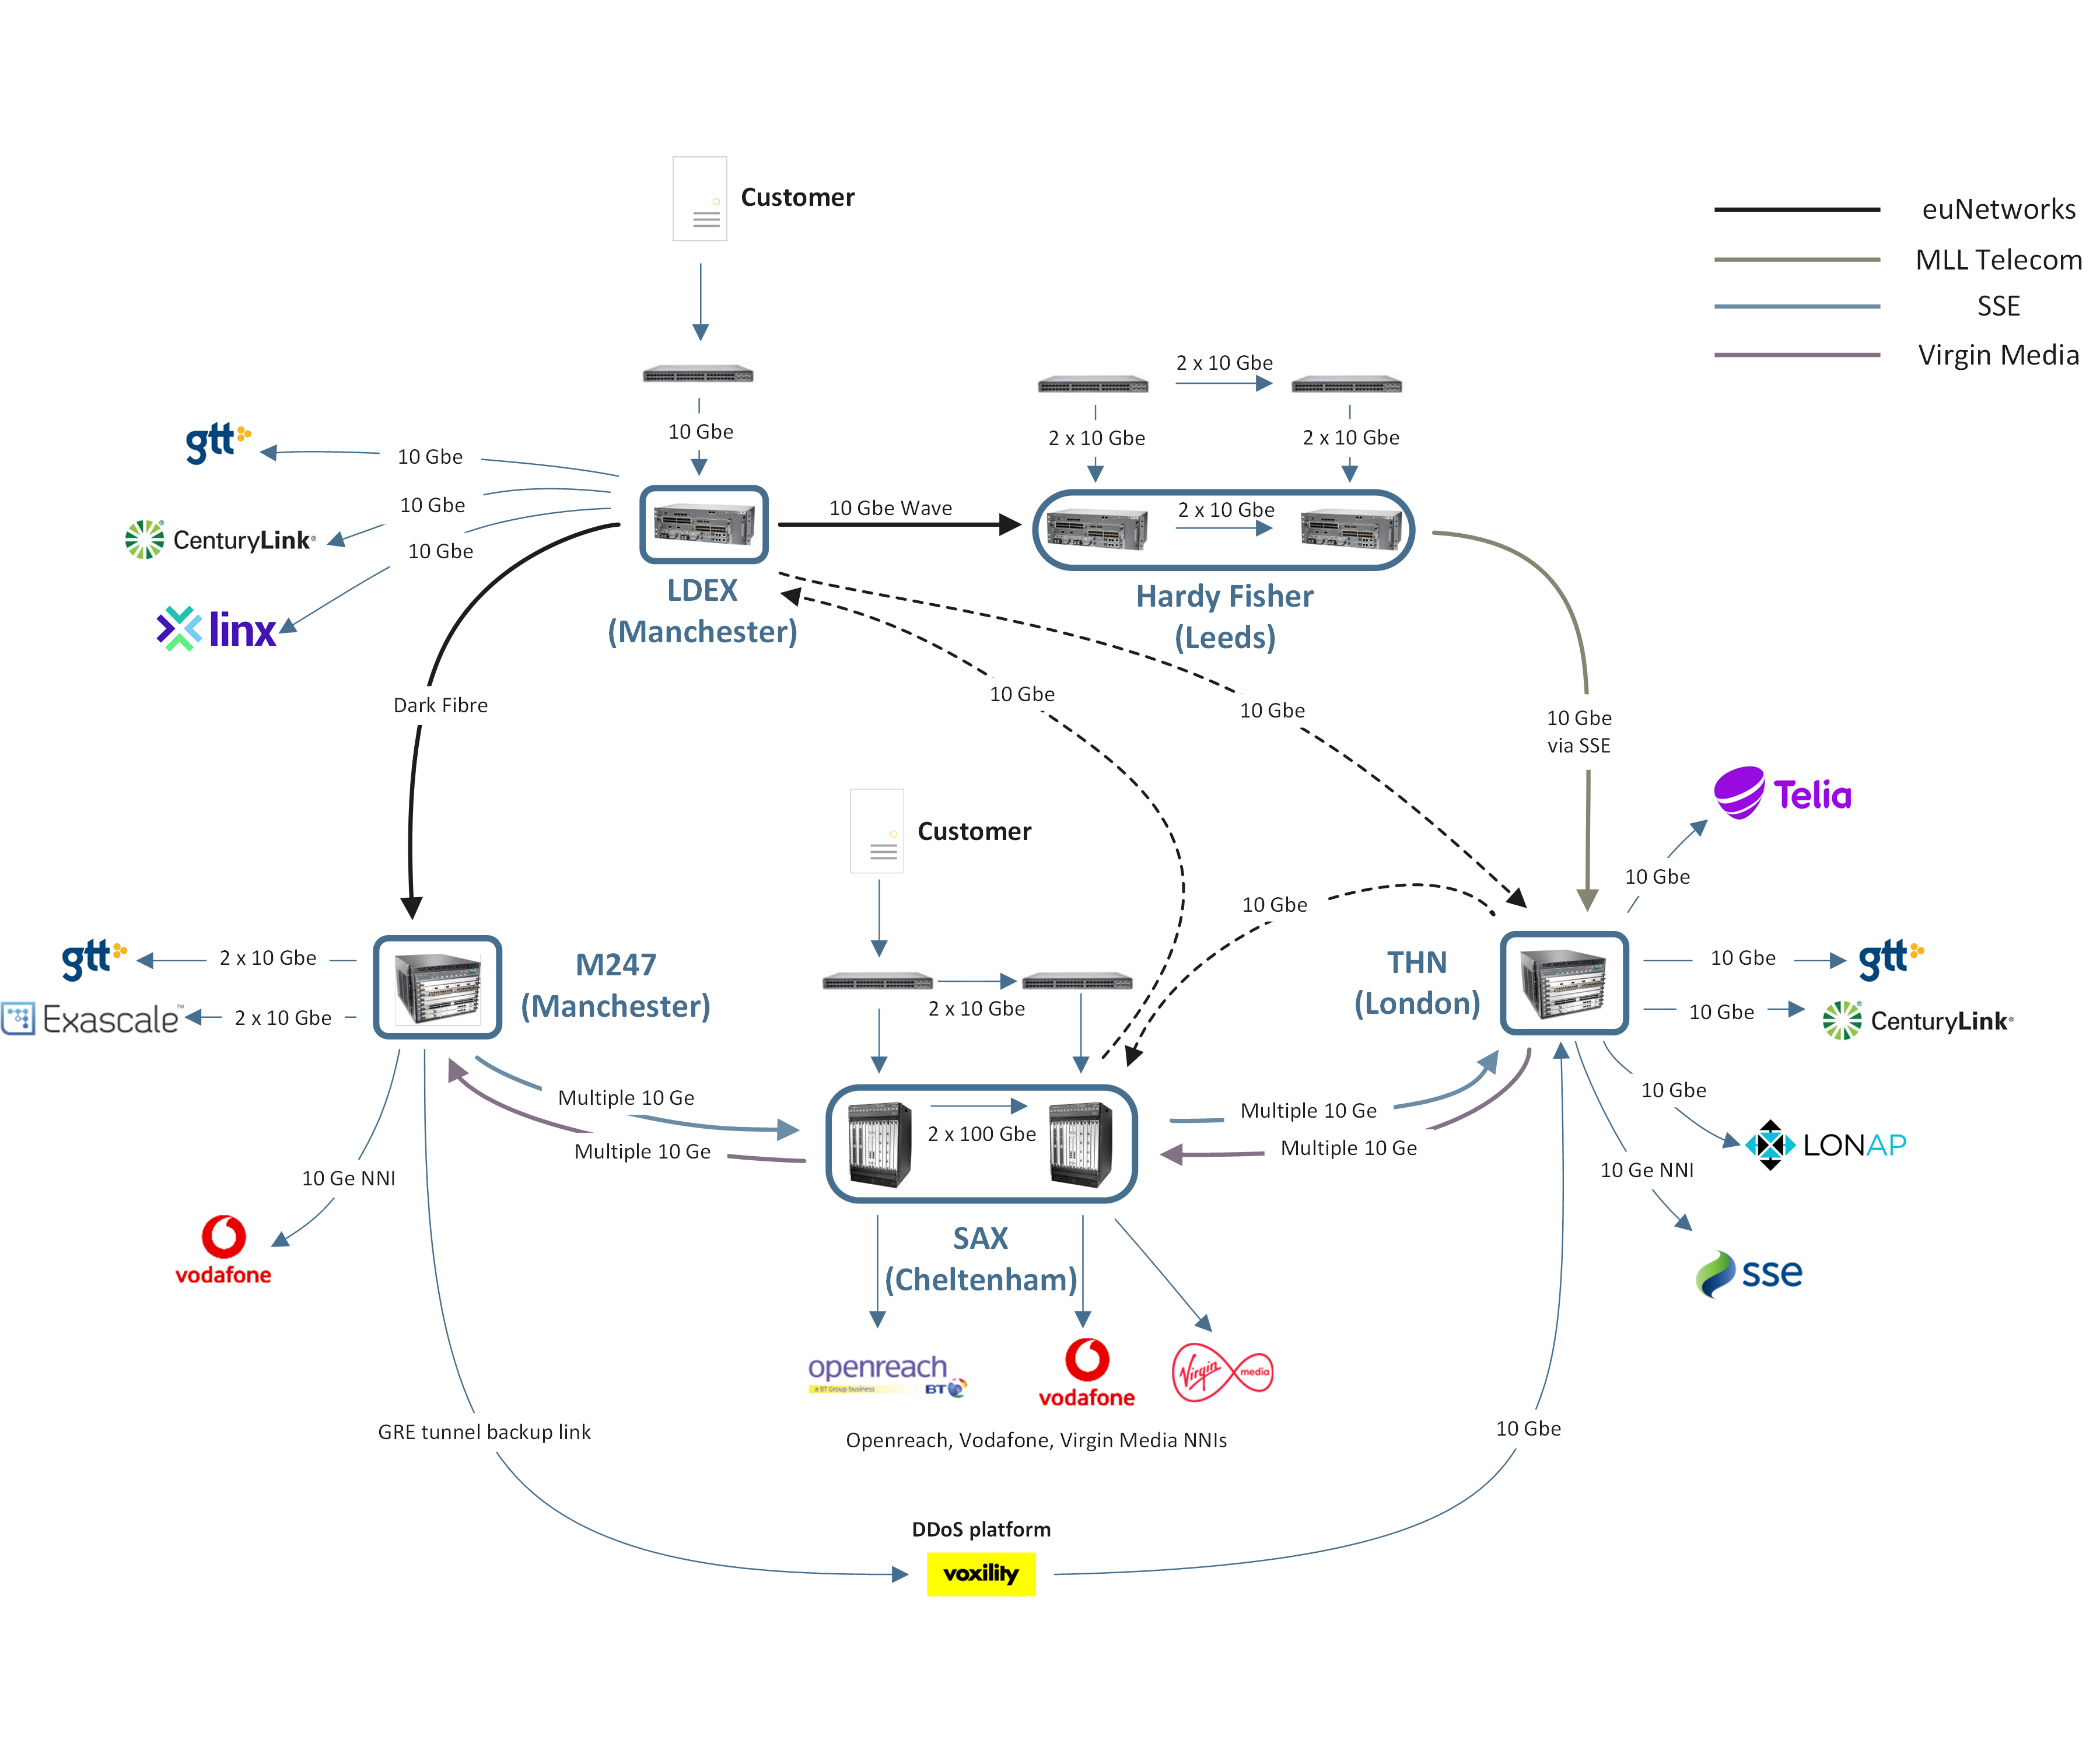 Image of our cloud network connectivity diagram.